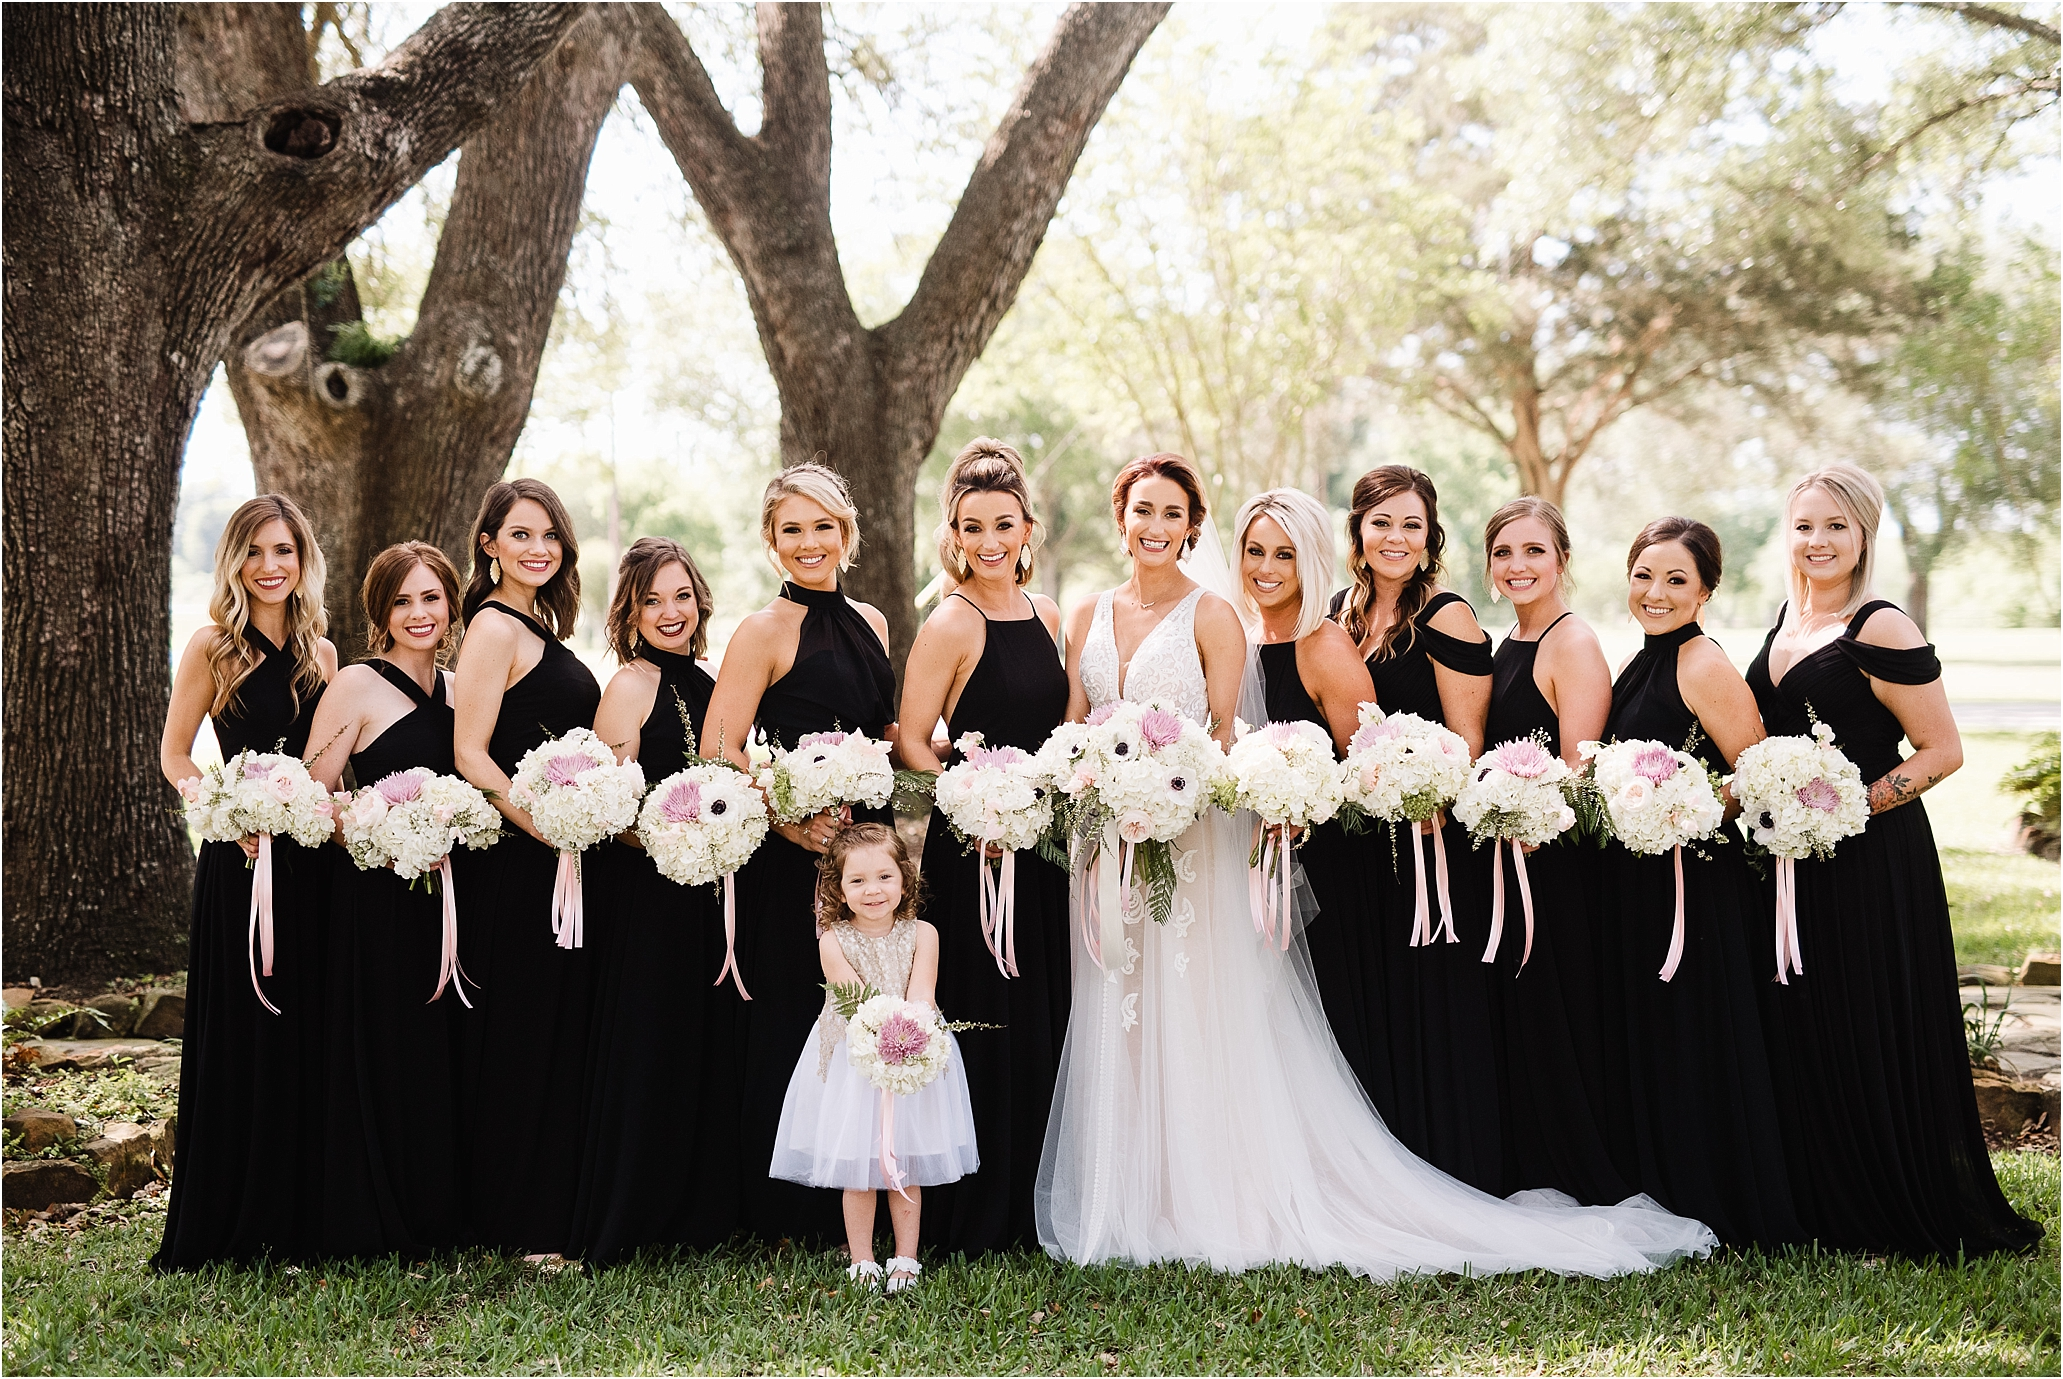 PattisonHouse_TexasWeddingPhotographer_CarlyCrockett&MattBrownWedding_0080.jpg